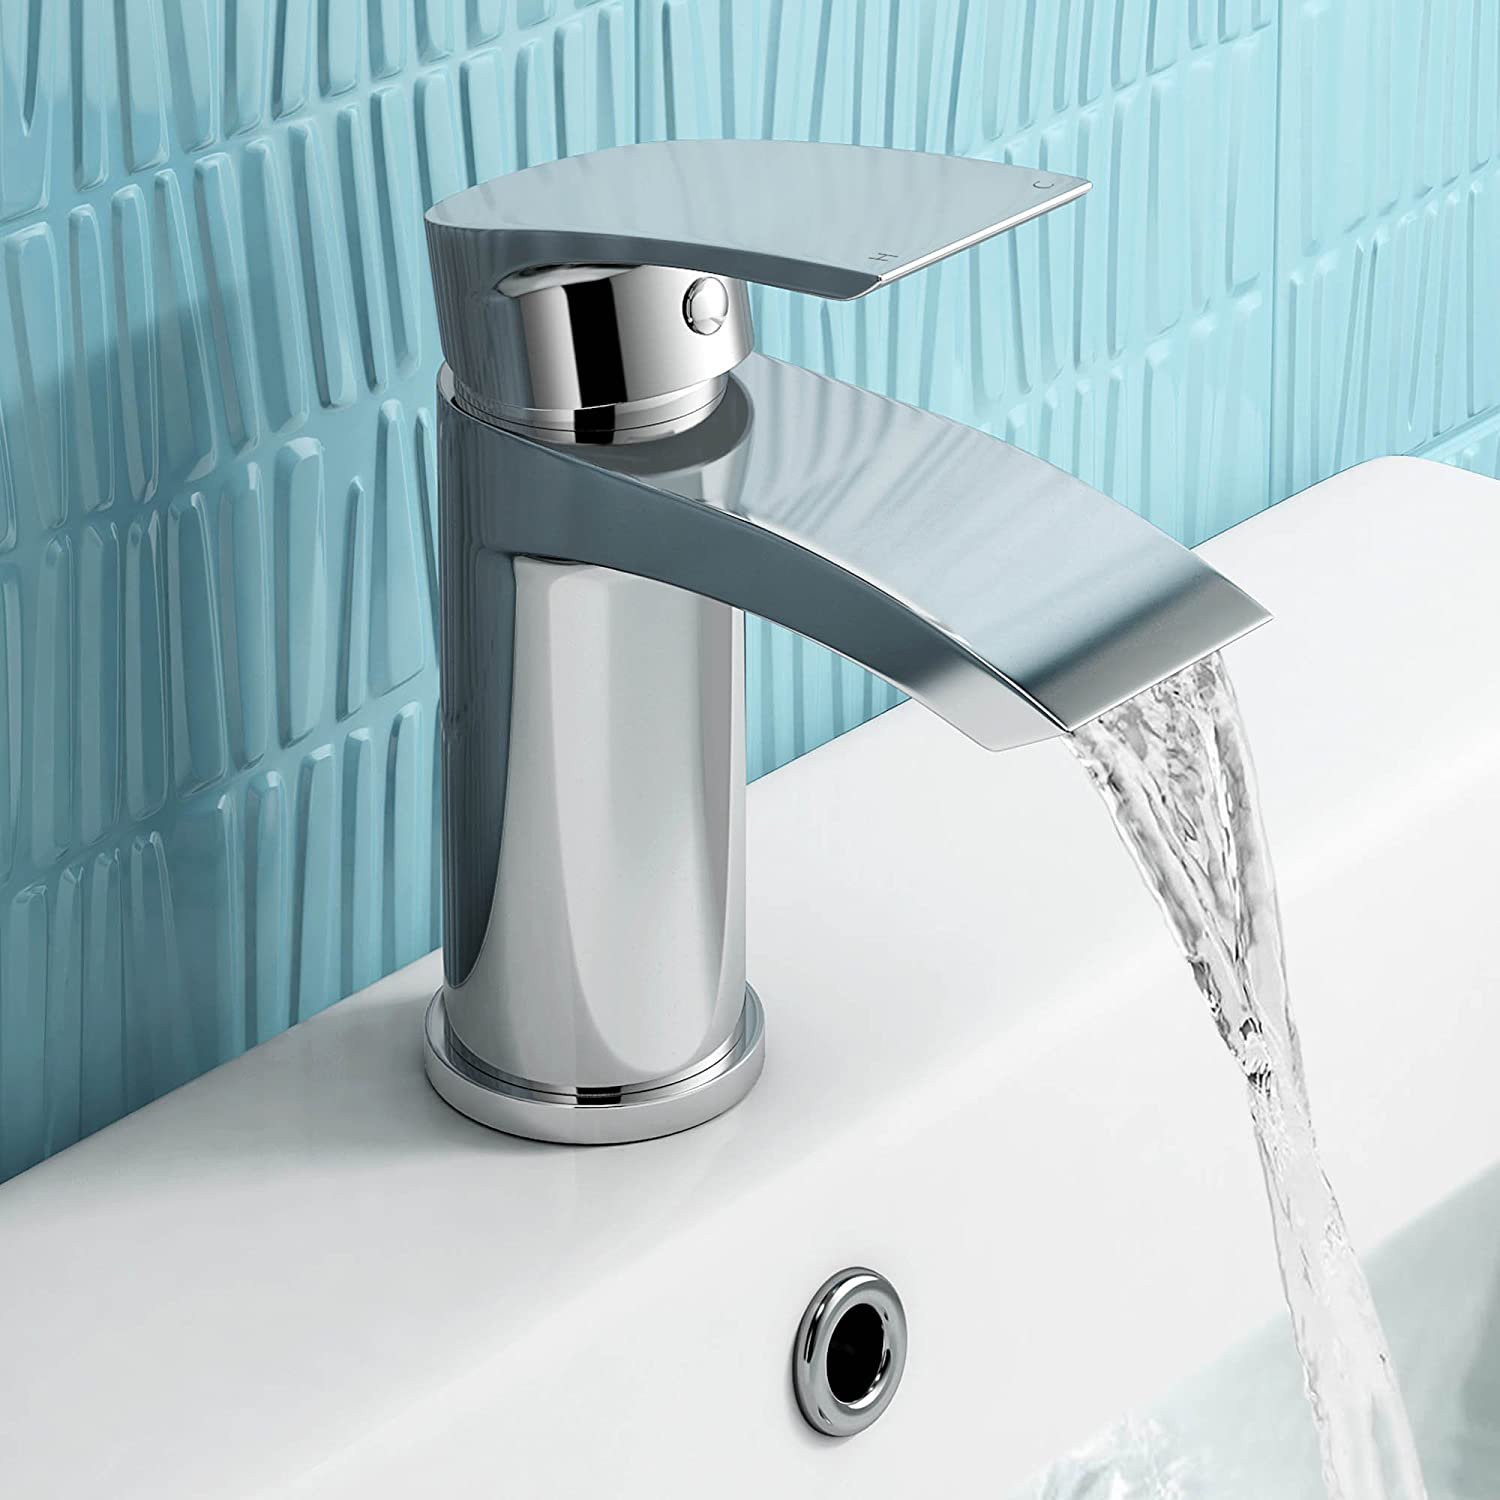 iBathUK Chrome Basin Sink Mixer Tap Modern Bathroom Lever Faucet ...